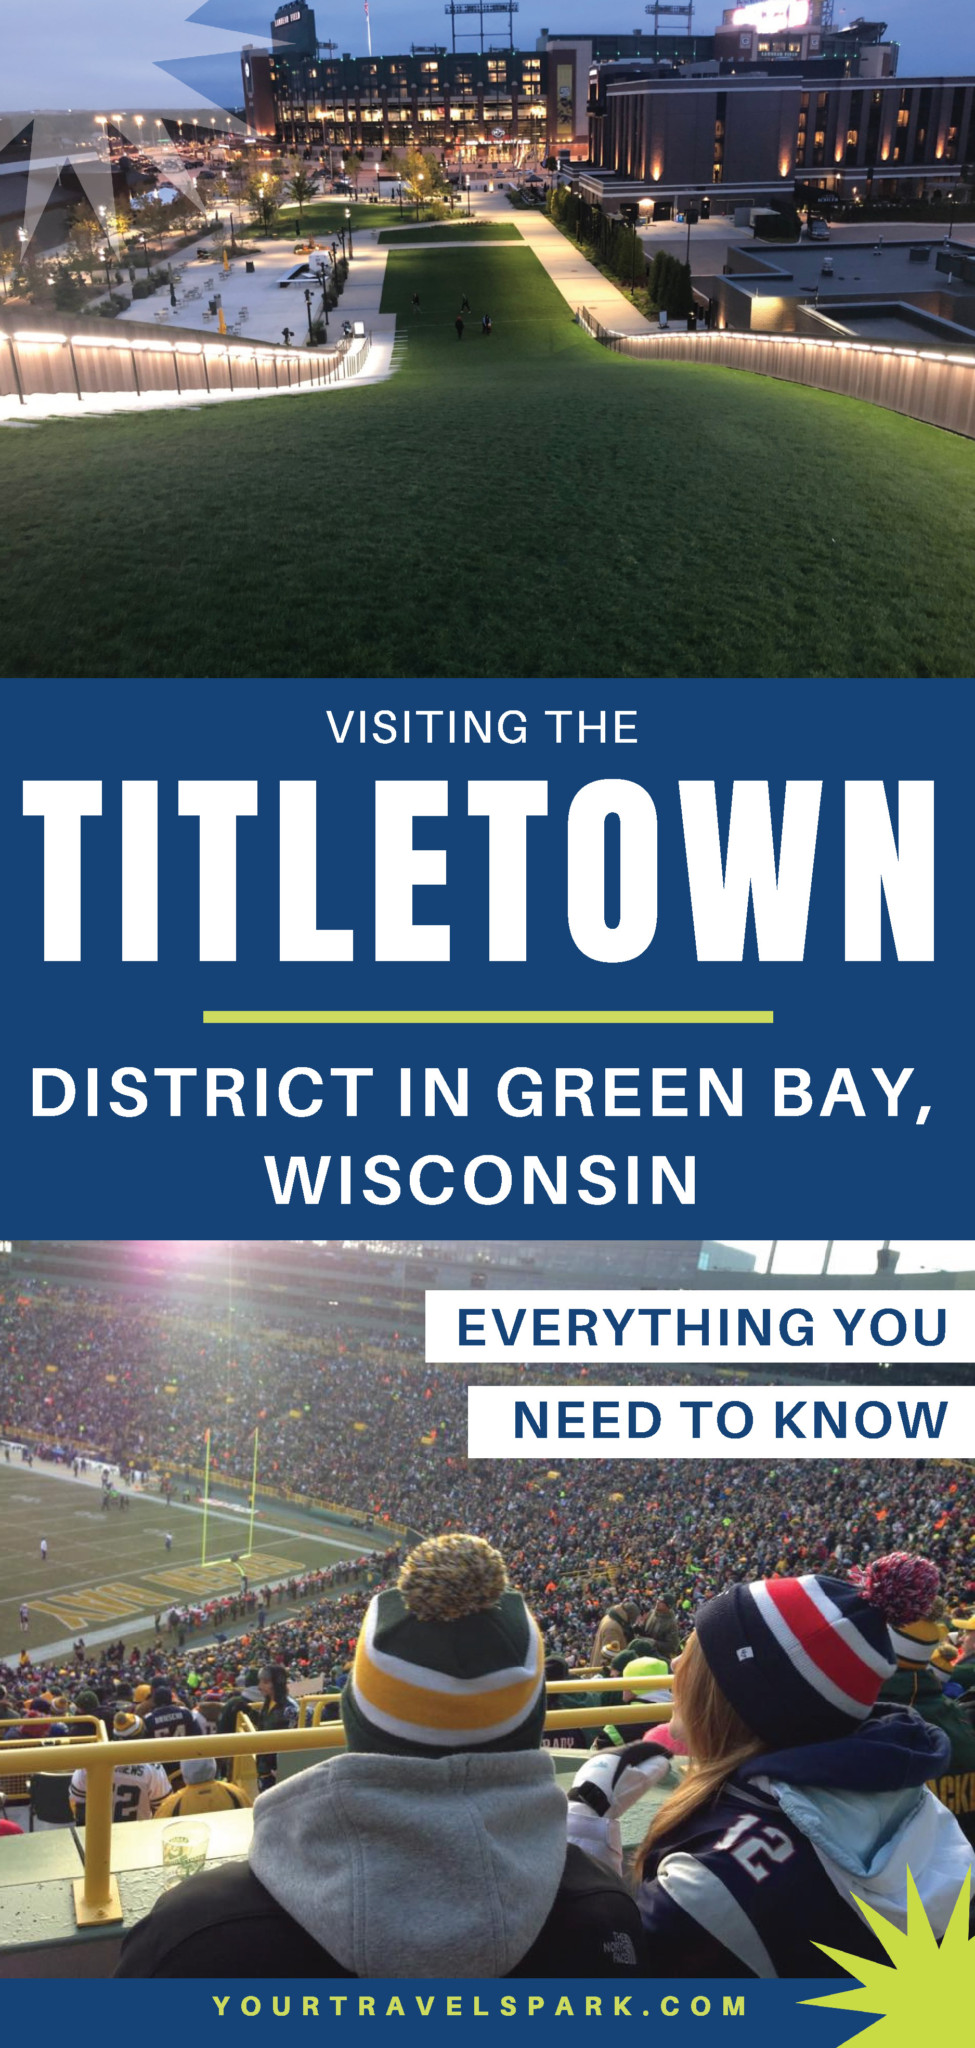 Visiting the new Titletown District in Green Bay, Wisconsin — the new district near Lambeau Field by the Green Bay Packers. #greenbaypackers #greenbay #packers #greenbay #greenbaywi #greenbaywisconsin #titletown #titletowndistrict #titletowndistrictgreenbay #gopackgo #lambeau #lambeaufield #arienshills #ariens